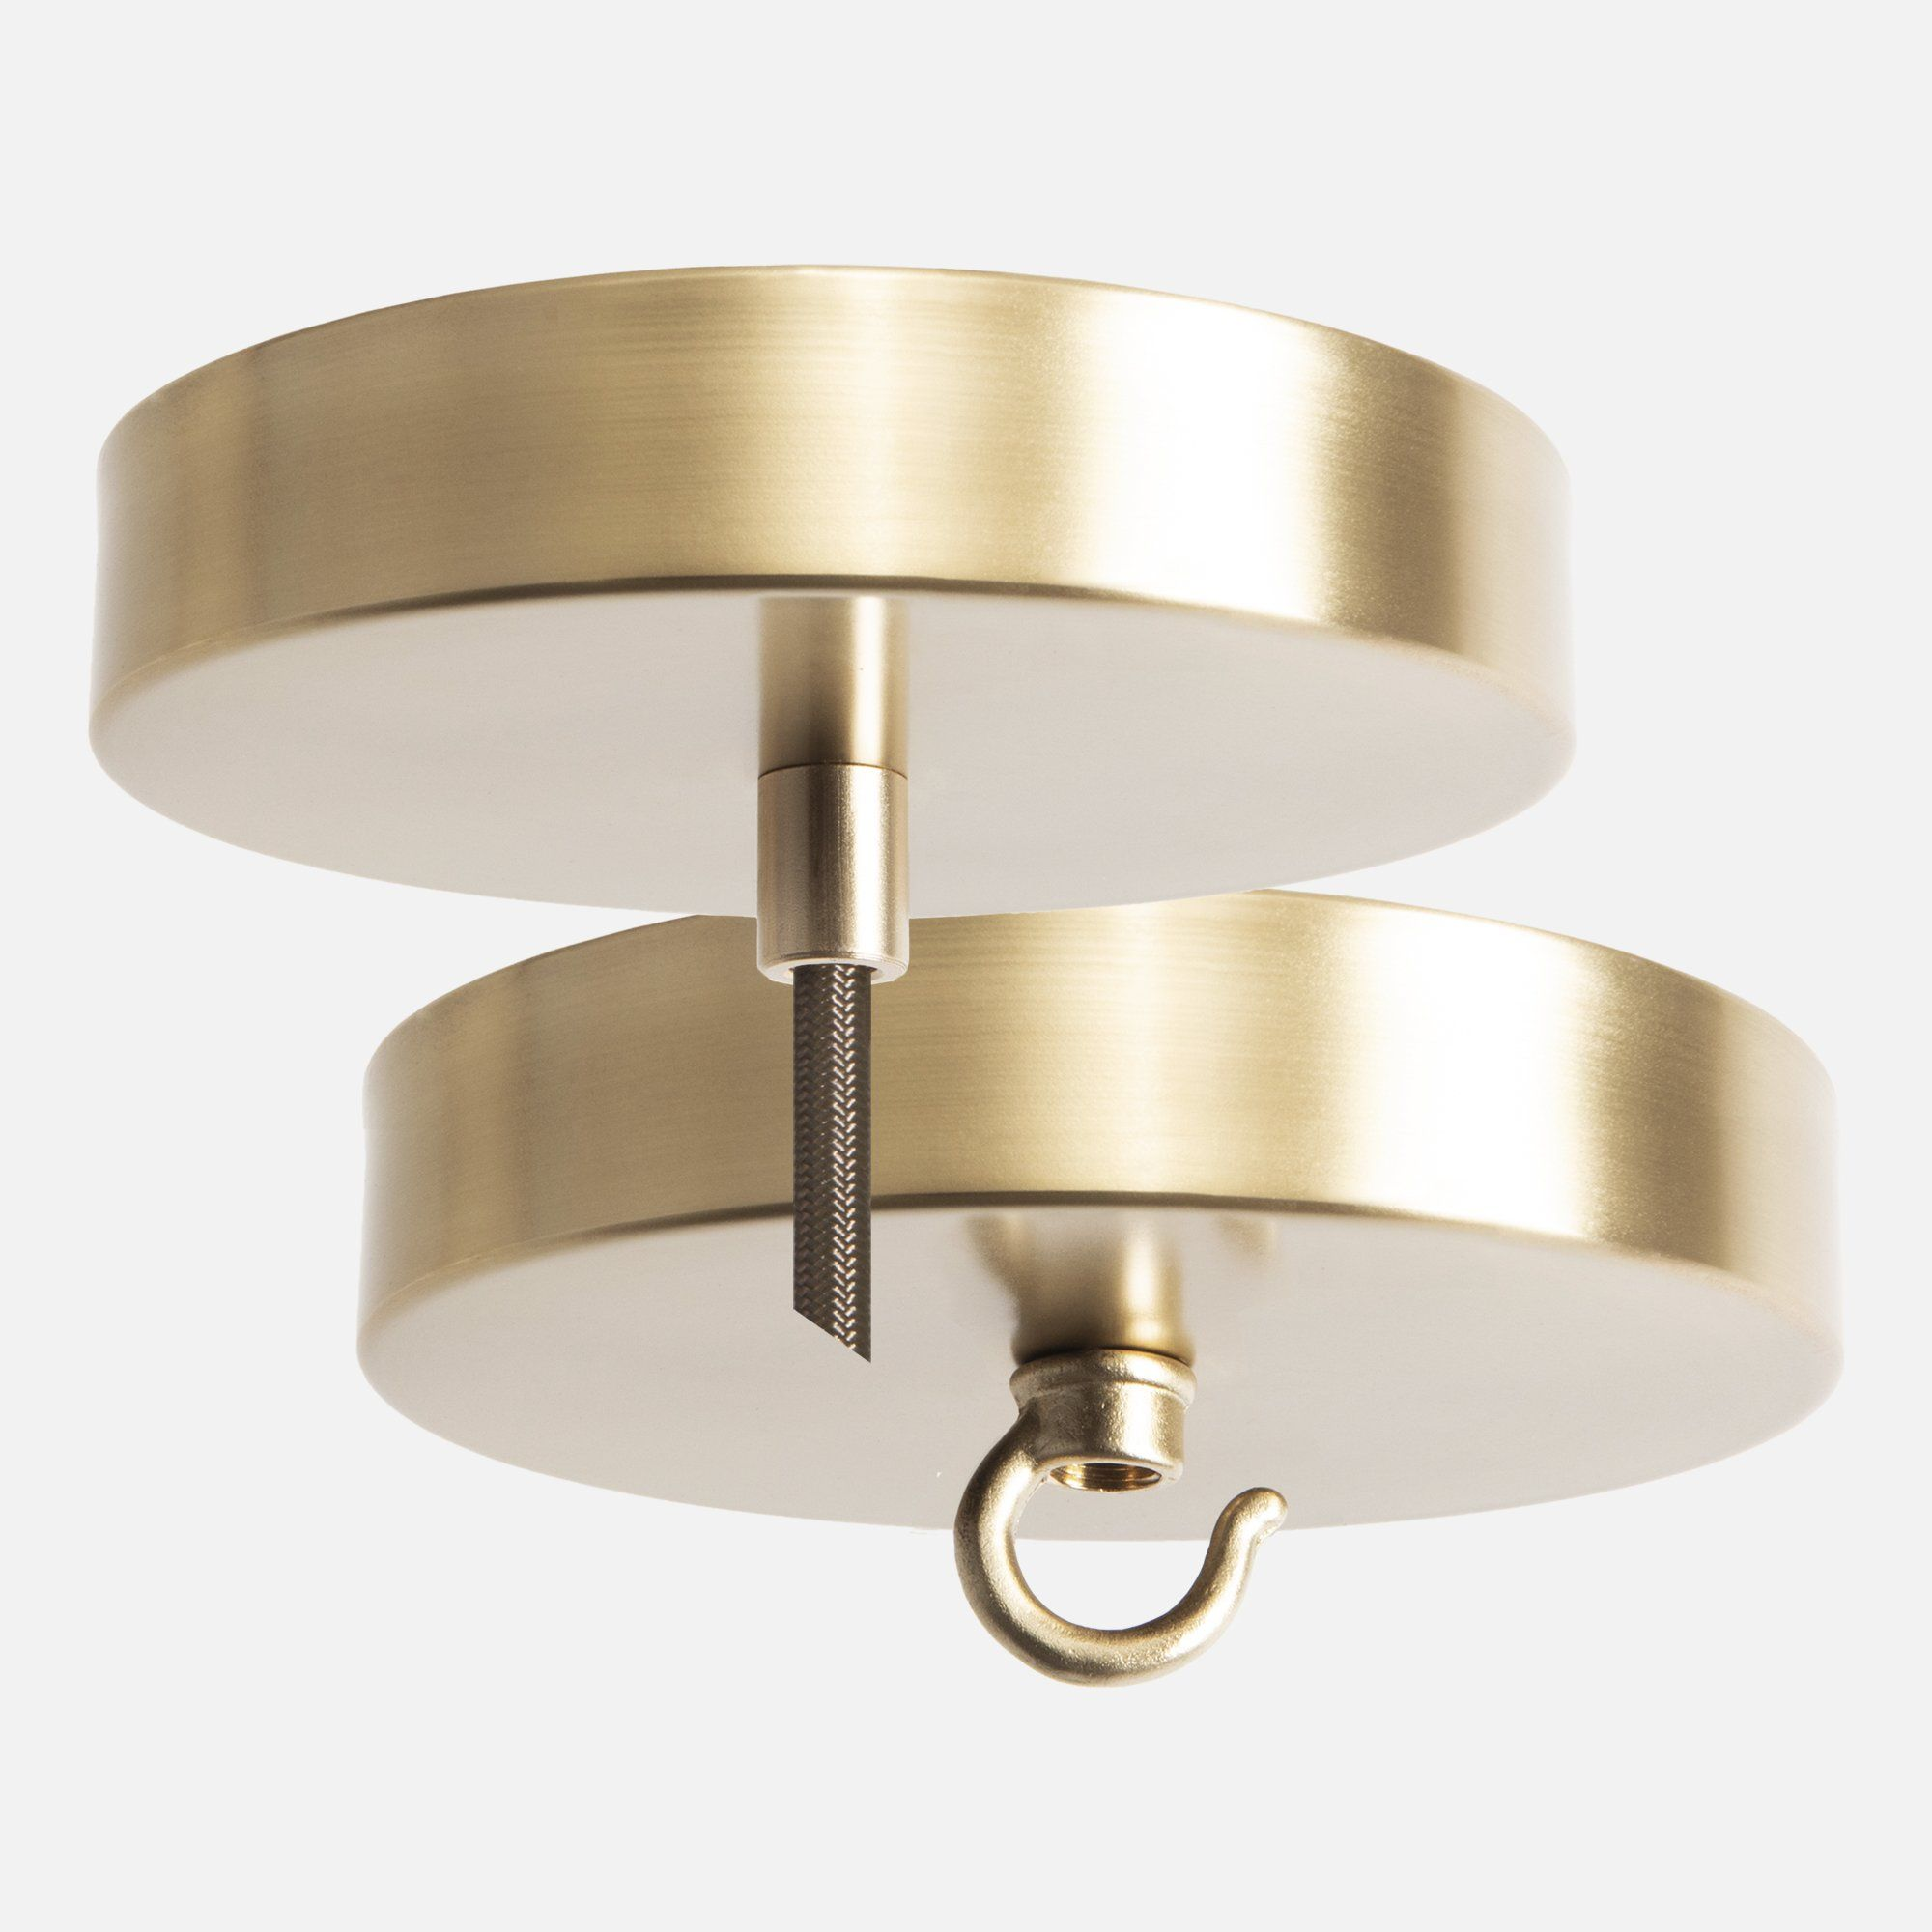 Ceiling Canopy Kit 5 8 Diameter Ceiling Canopy Canopy